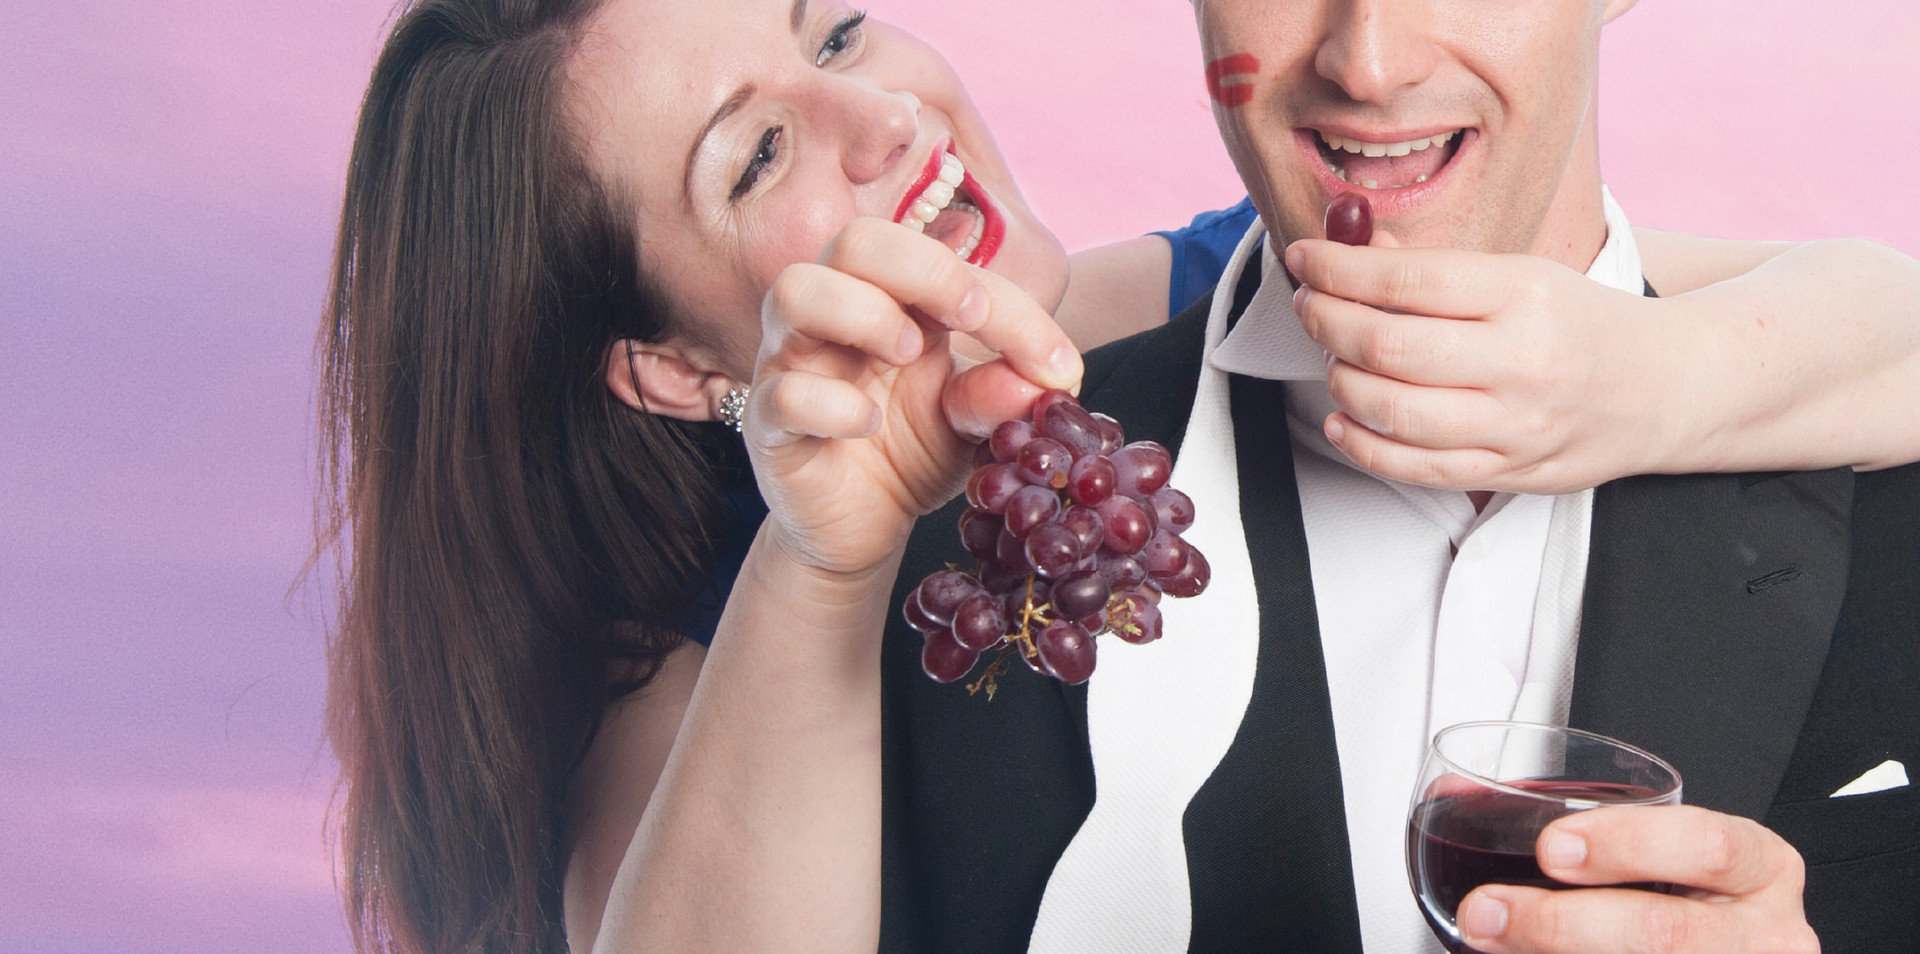 Promotional Image for our opera revue 'Eat, Drink, Love!'